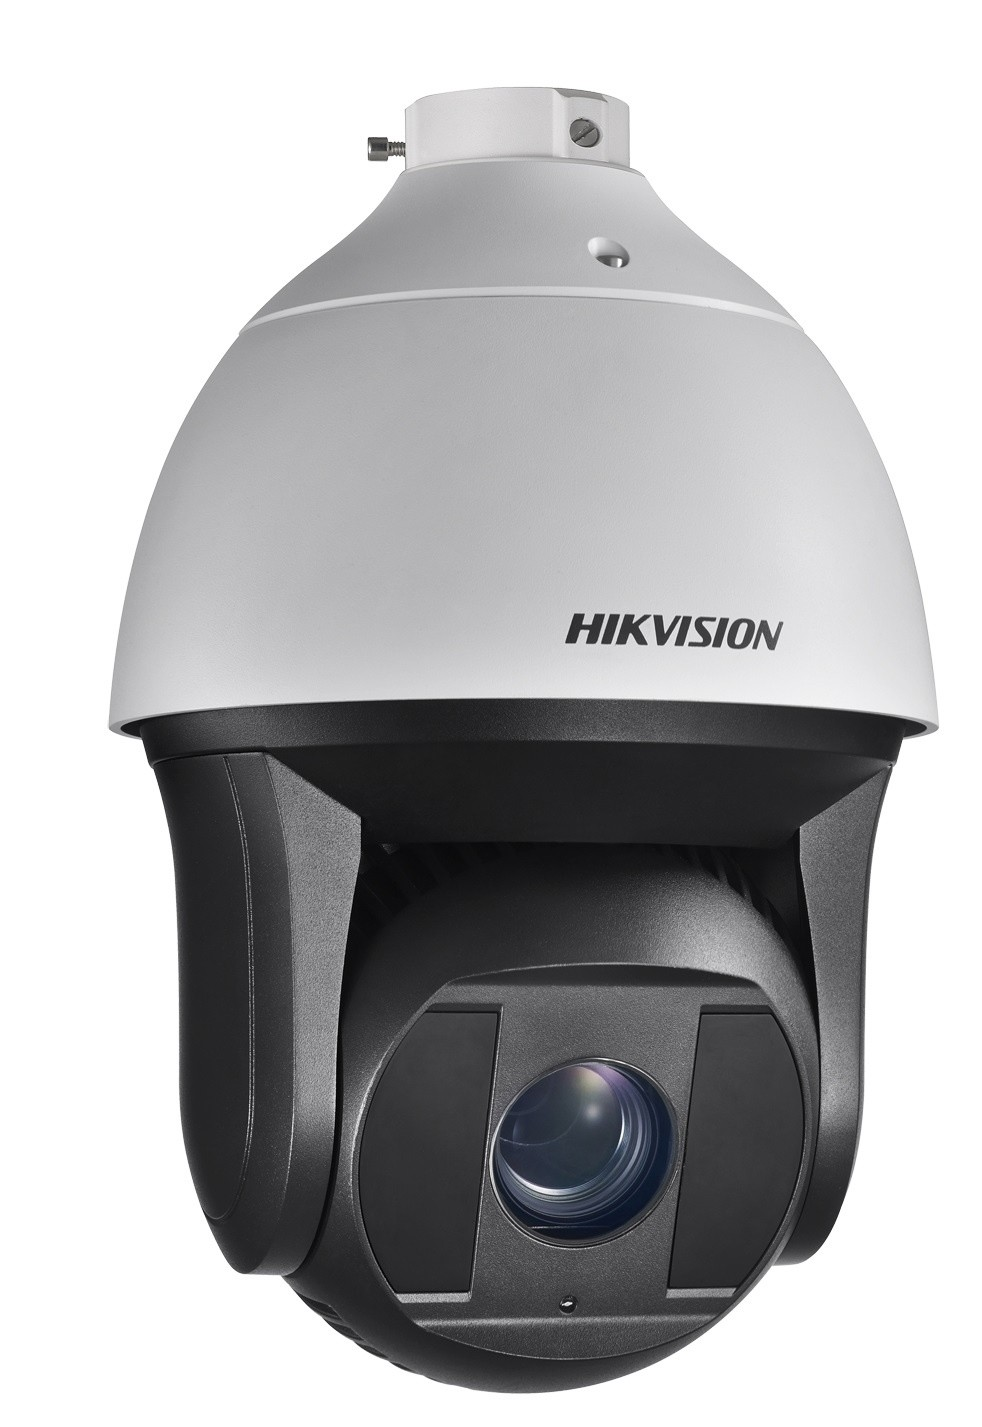 Hikvision DS-2DF8223I-AELW PTZ IP Camera Auto Tracking Darkfighter 2MP 1080P 23x Zoom 200M IR Pro Ultra-Low Illumination Face Detection CCTV Full HD